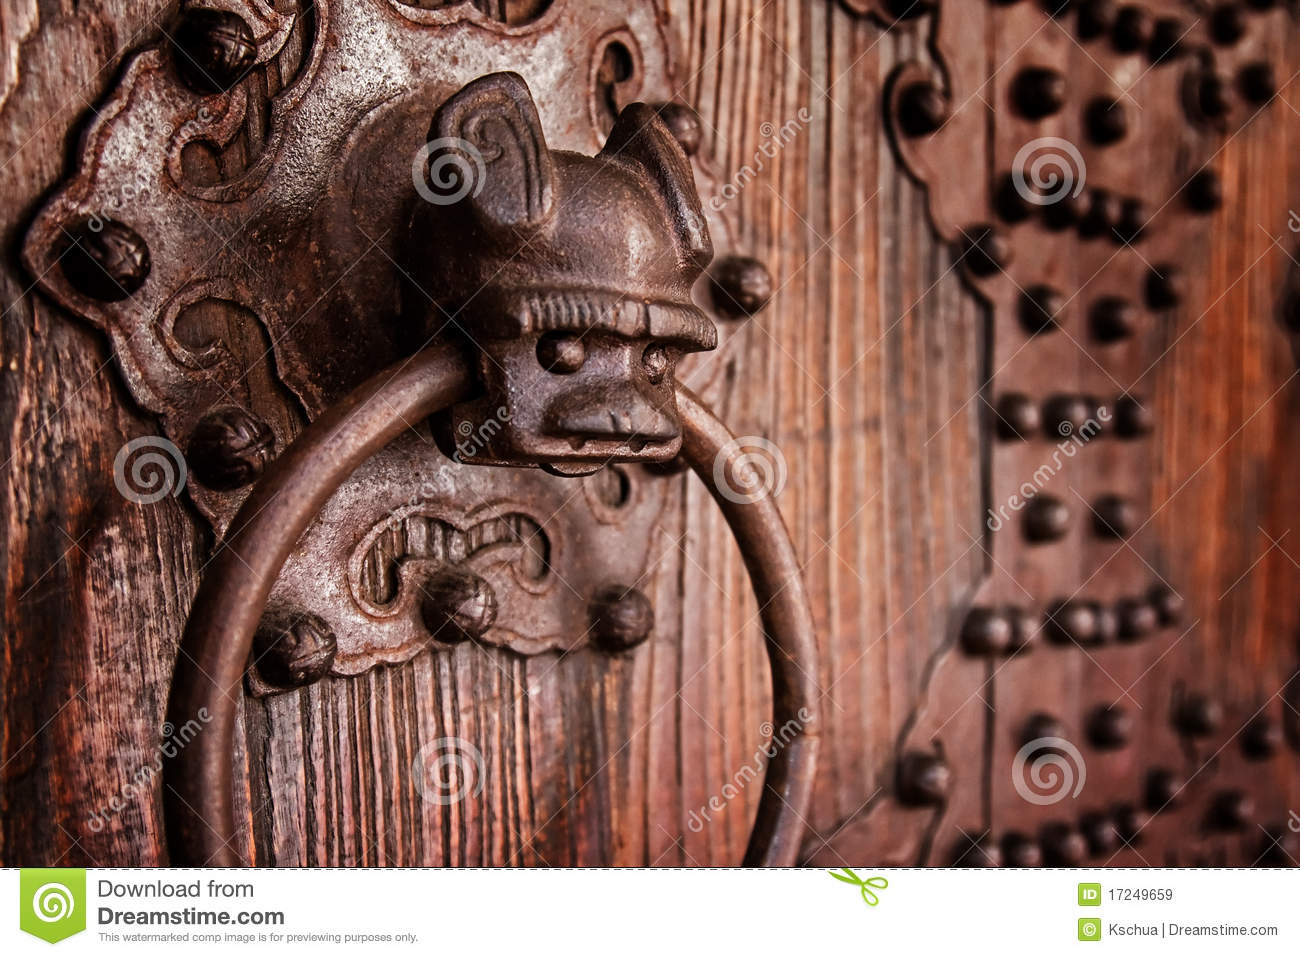 Antique chinese door knocker - Antique Chinese Door Knocker Stock Image - Image Of House, Closeup